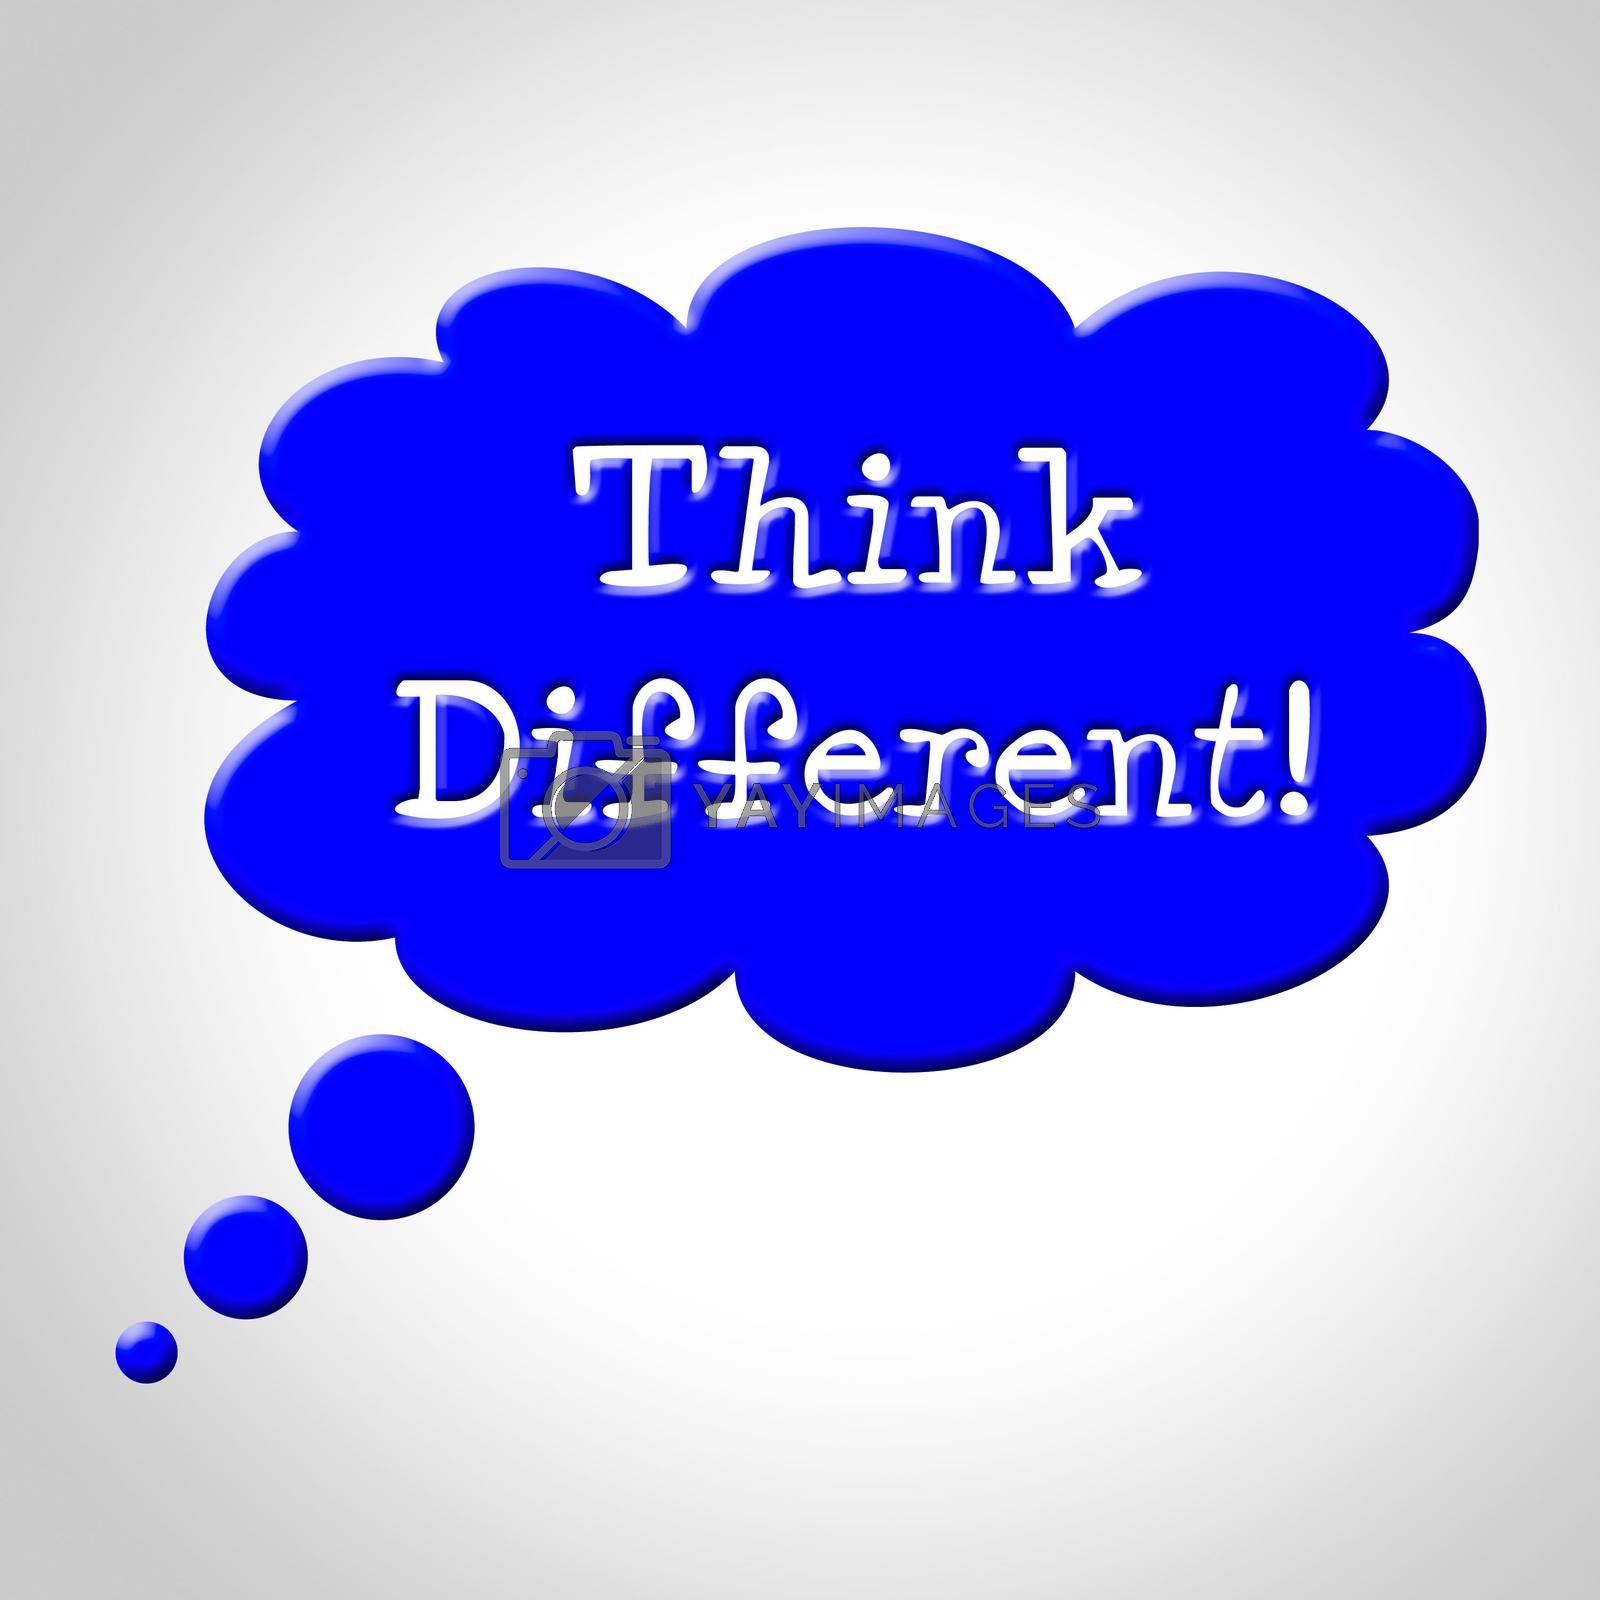 Think Different Bubble Represents Change Now And Revise by stuartmiles